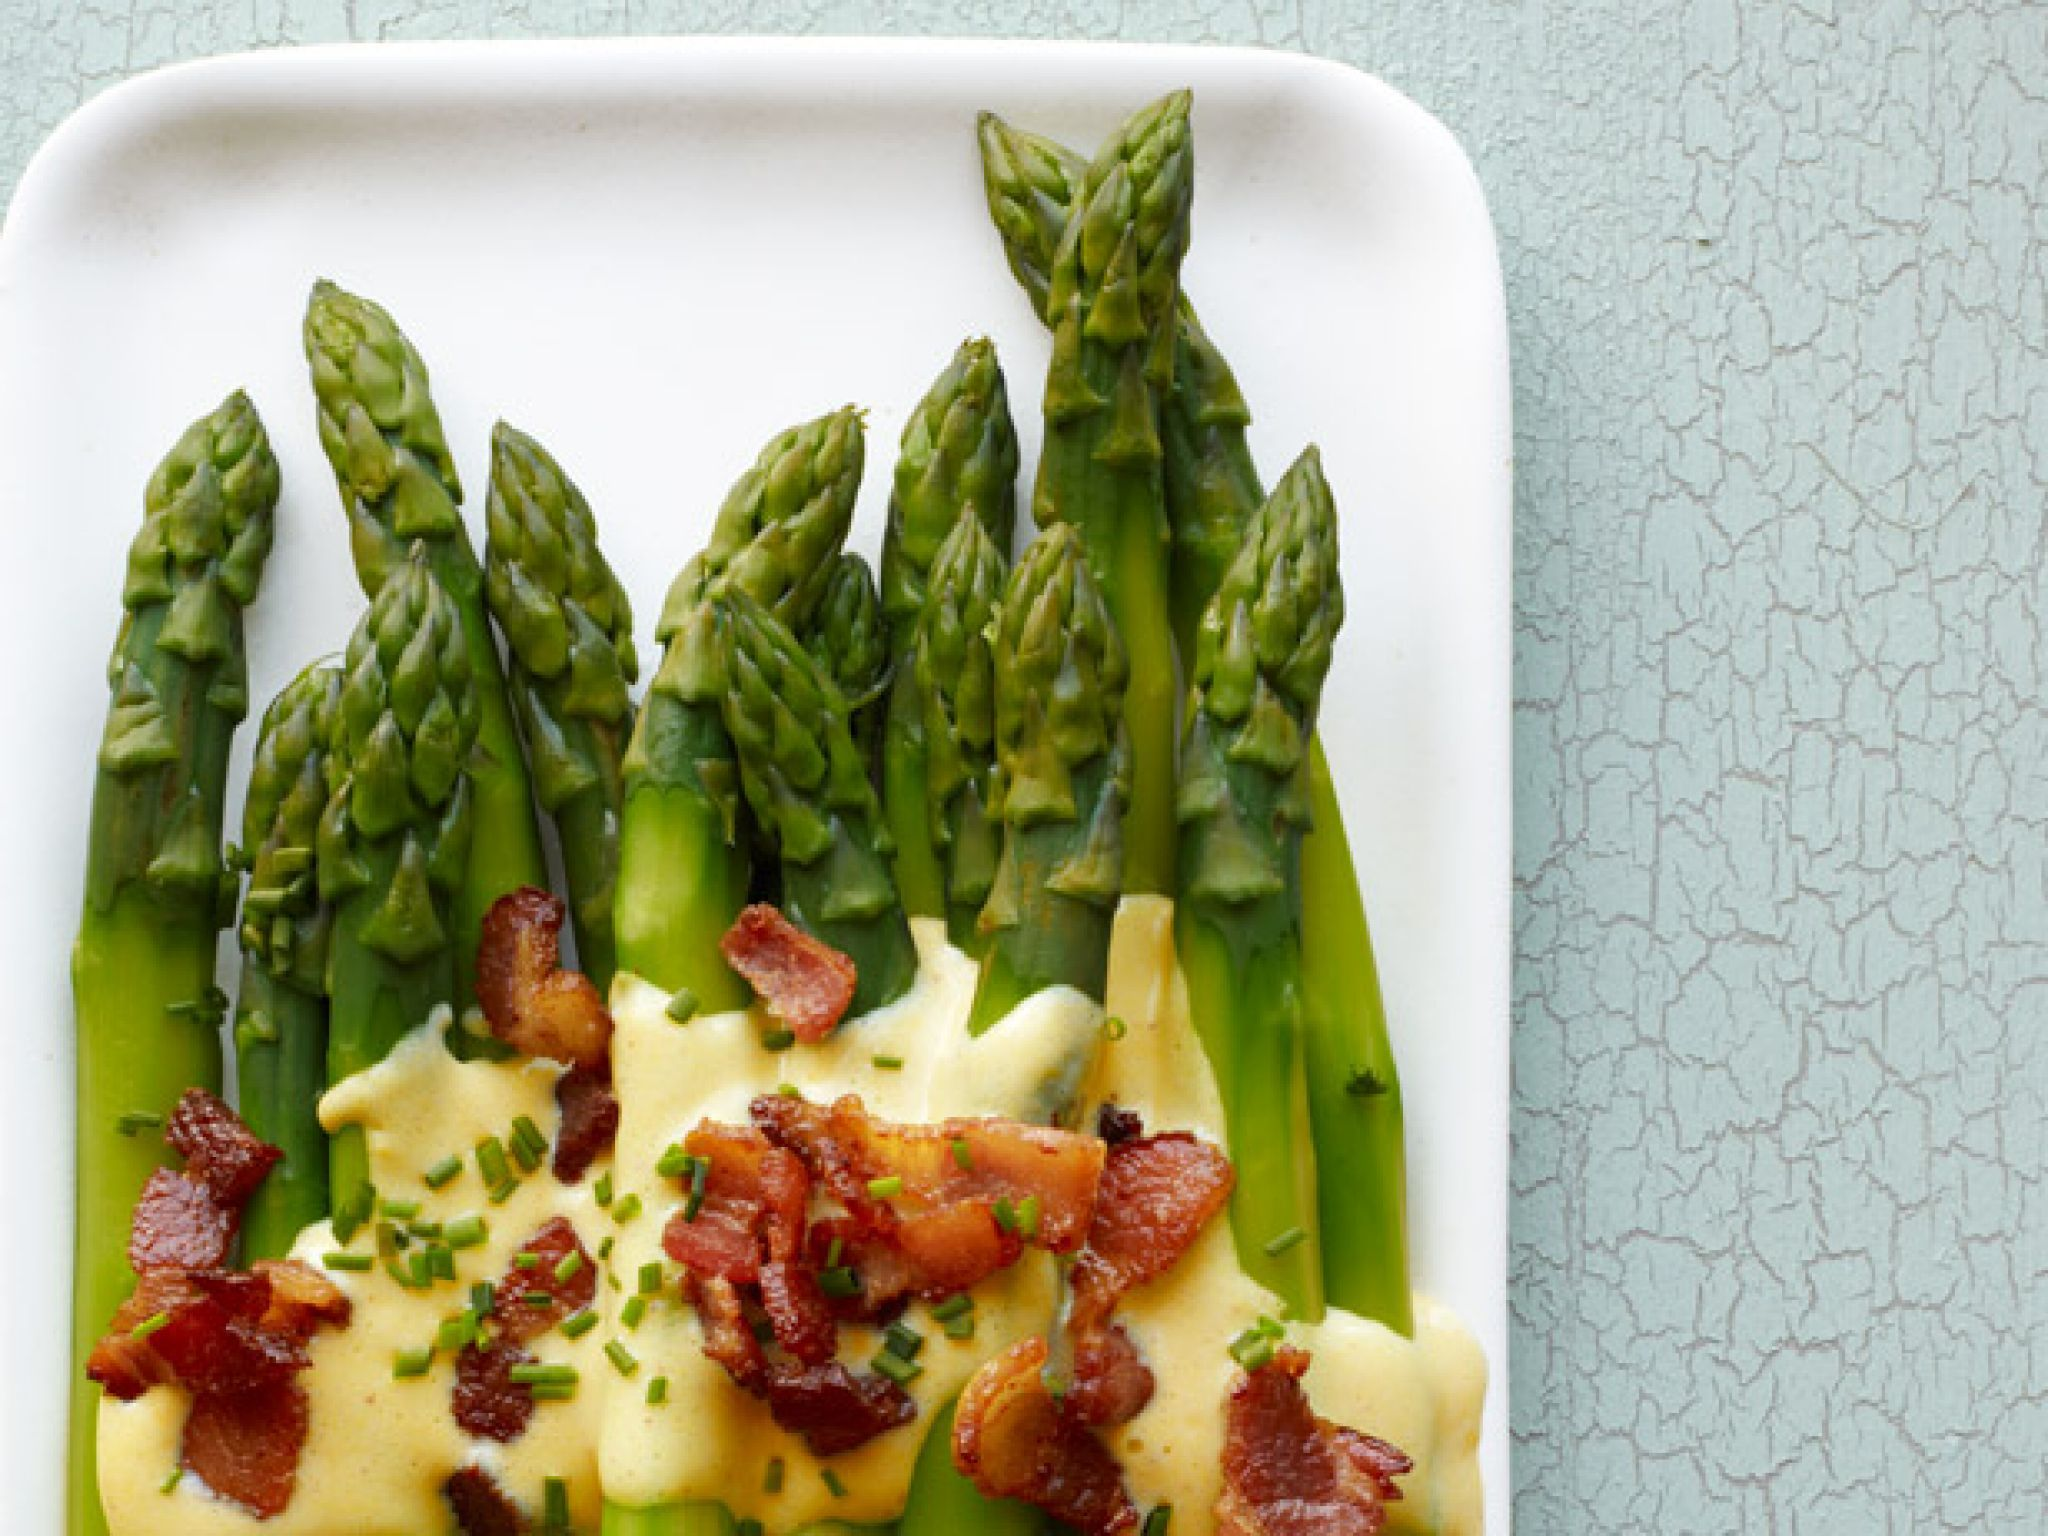 Our best easter recipes asparagus bacon and recipes asparagus with bacon sabayon food network magazine forumfinder Images